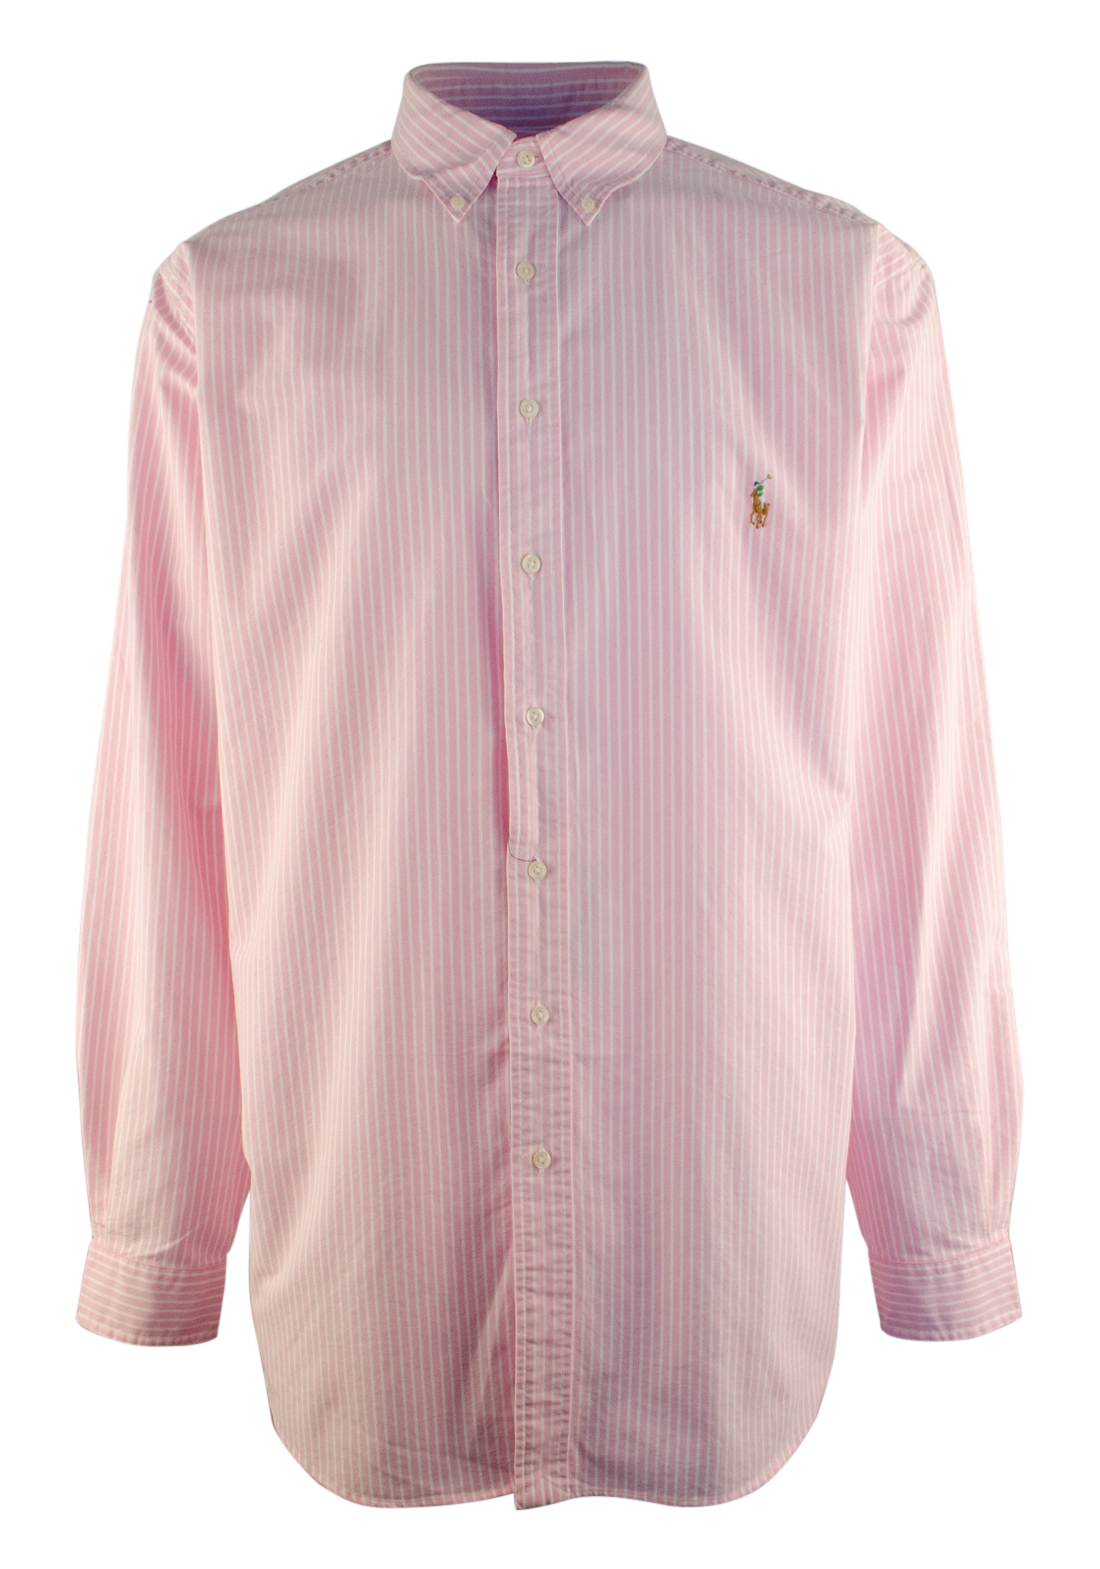 Ralph lauren men 39 s big and tall long sleeve striped oxford for Big and tall long sleeve shirts